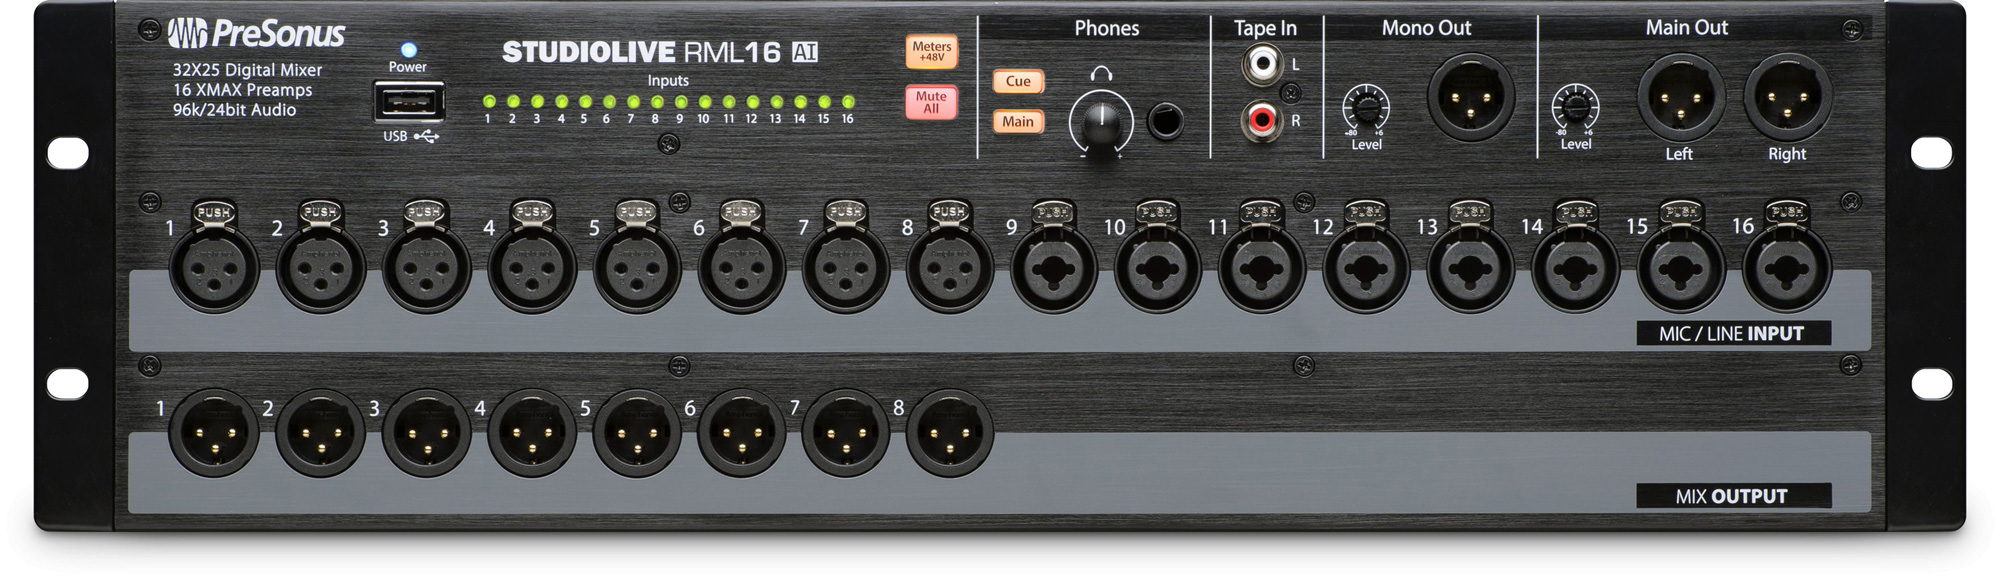 presonus studiolive rml16 ai 16 channel rack mount digital mixer with 16 remote xmax preamps. Black Bedroom Furniture Sets. Home Design Ideas